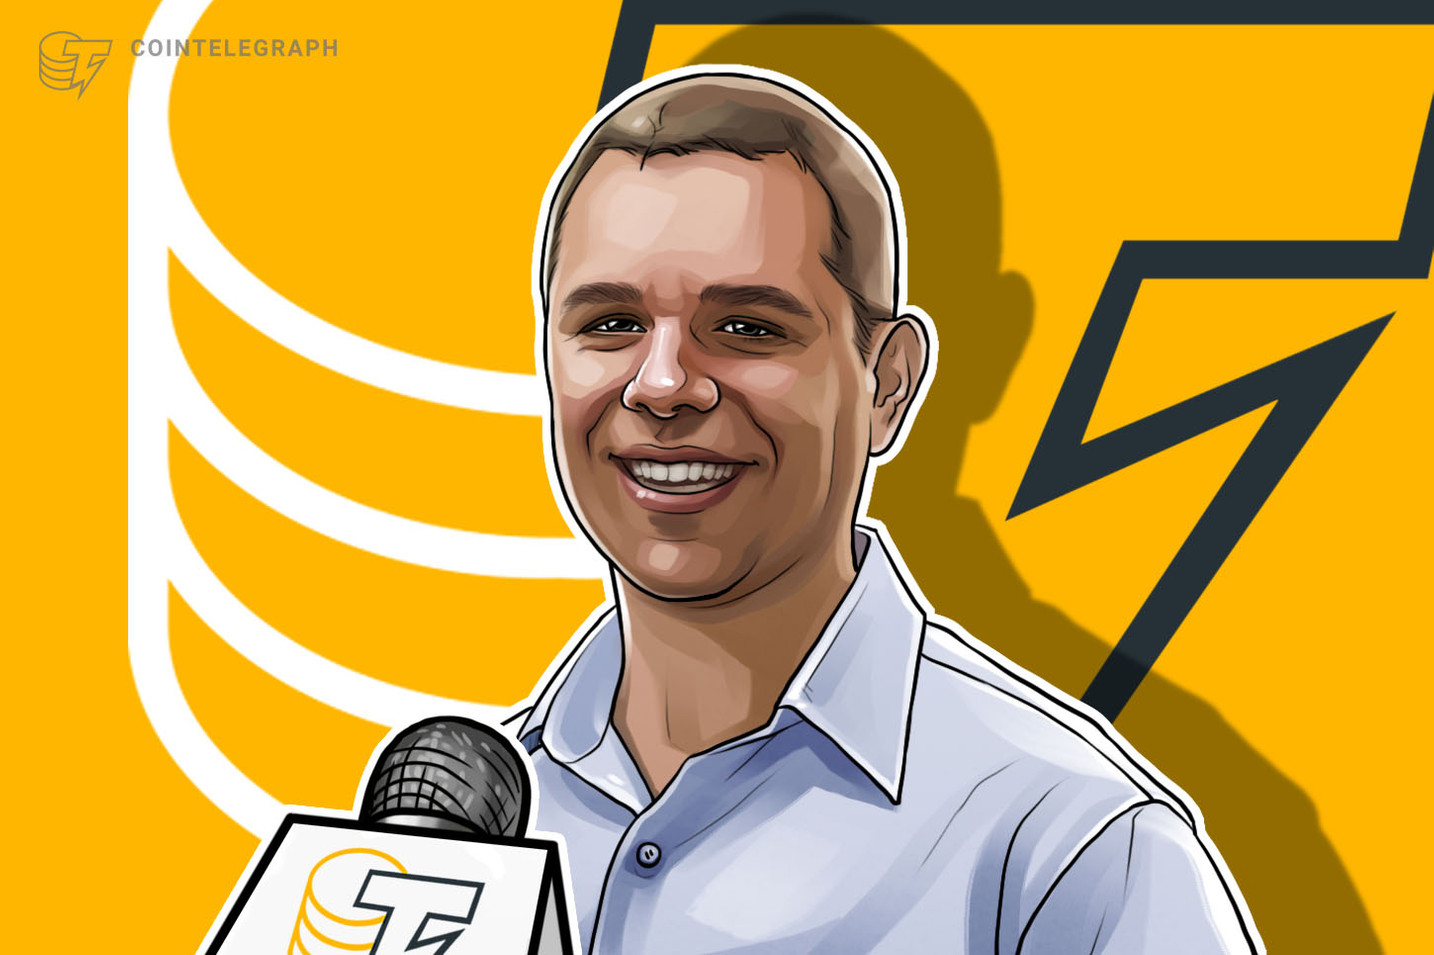 Peter Vessenes in the Focus of Cointelegraph China